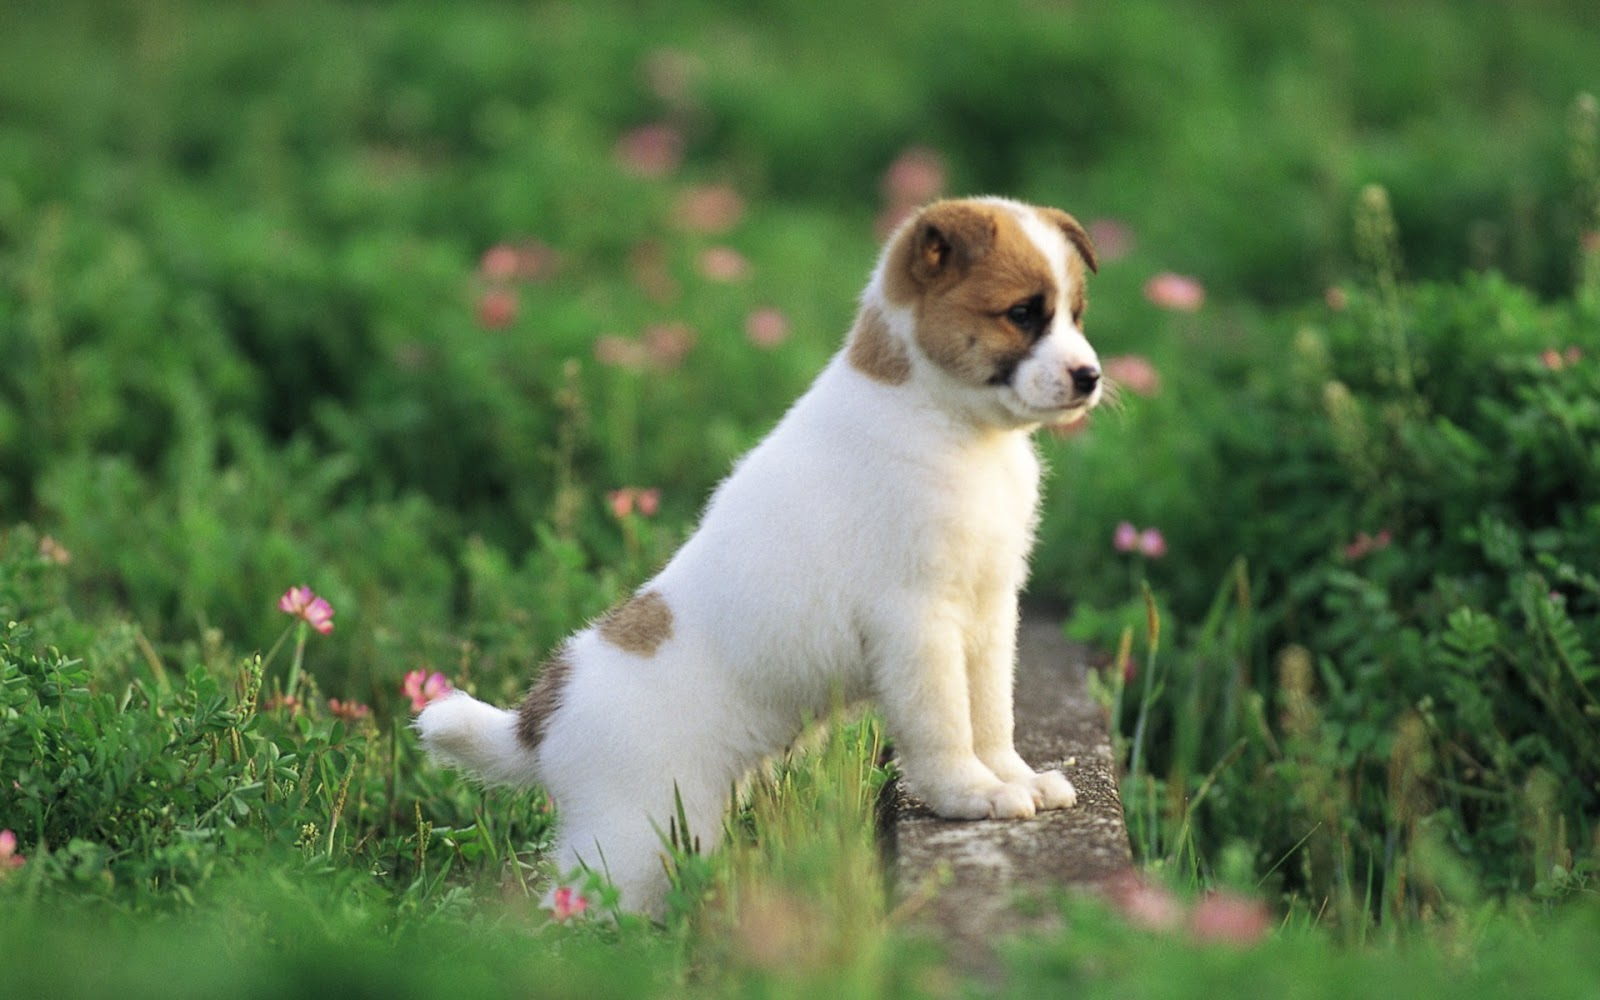 cute dog | baby dog hd wallpapers free download 1080p ...